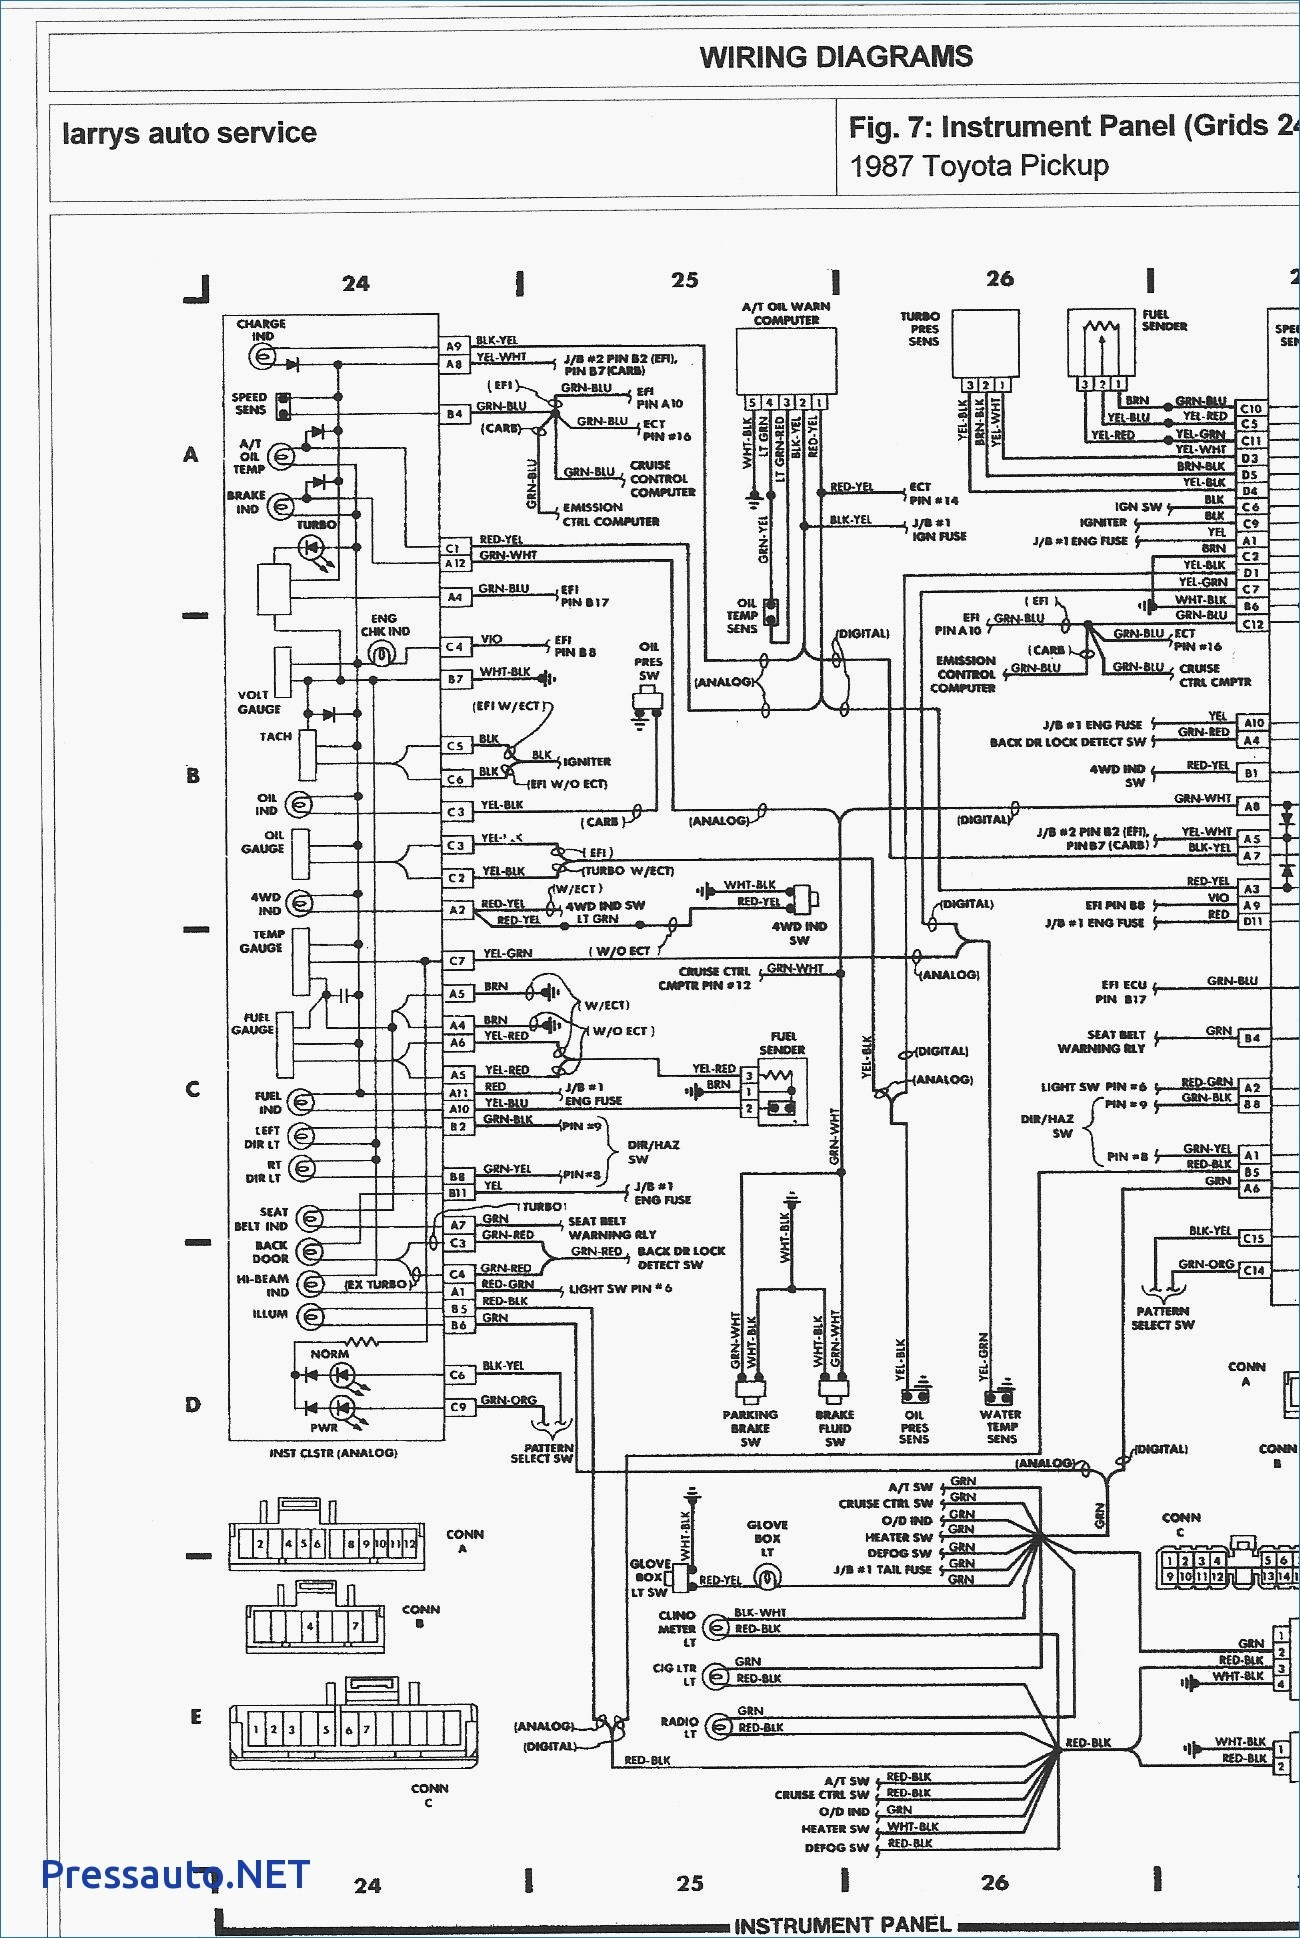 1983 Toyota Pickup Wiring Diagram 1983 Toyota Pickup Wiring Diagram 1984  Jeep Cherokee Wiring Diagram 1984 Toyota Pickup Headlight Wiring Diagram